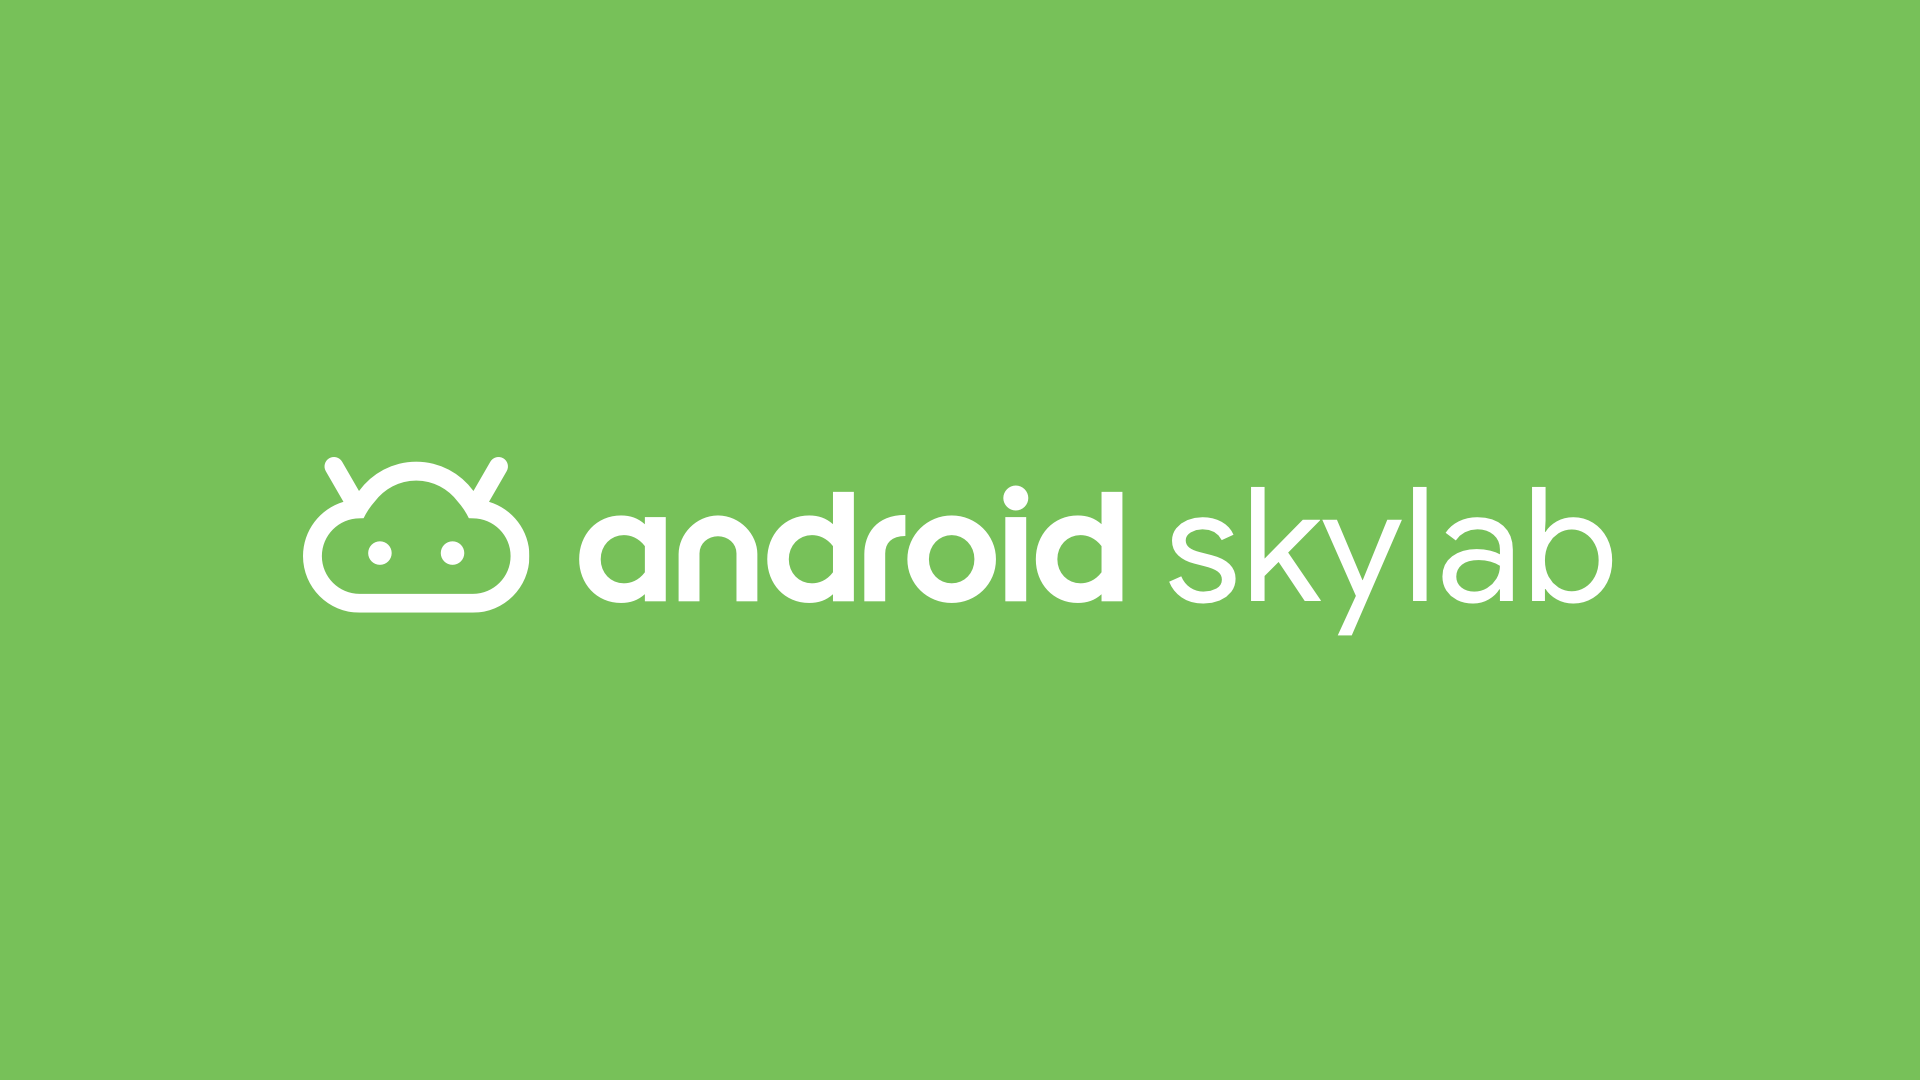 Google Android Skylab Logo by Jack Morgan